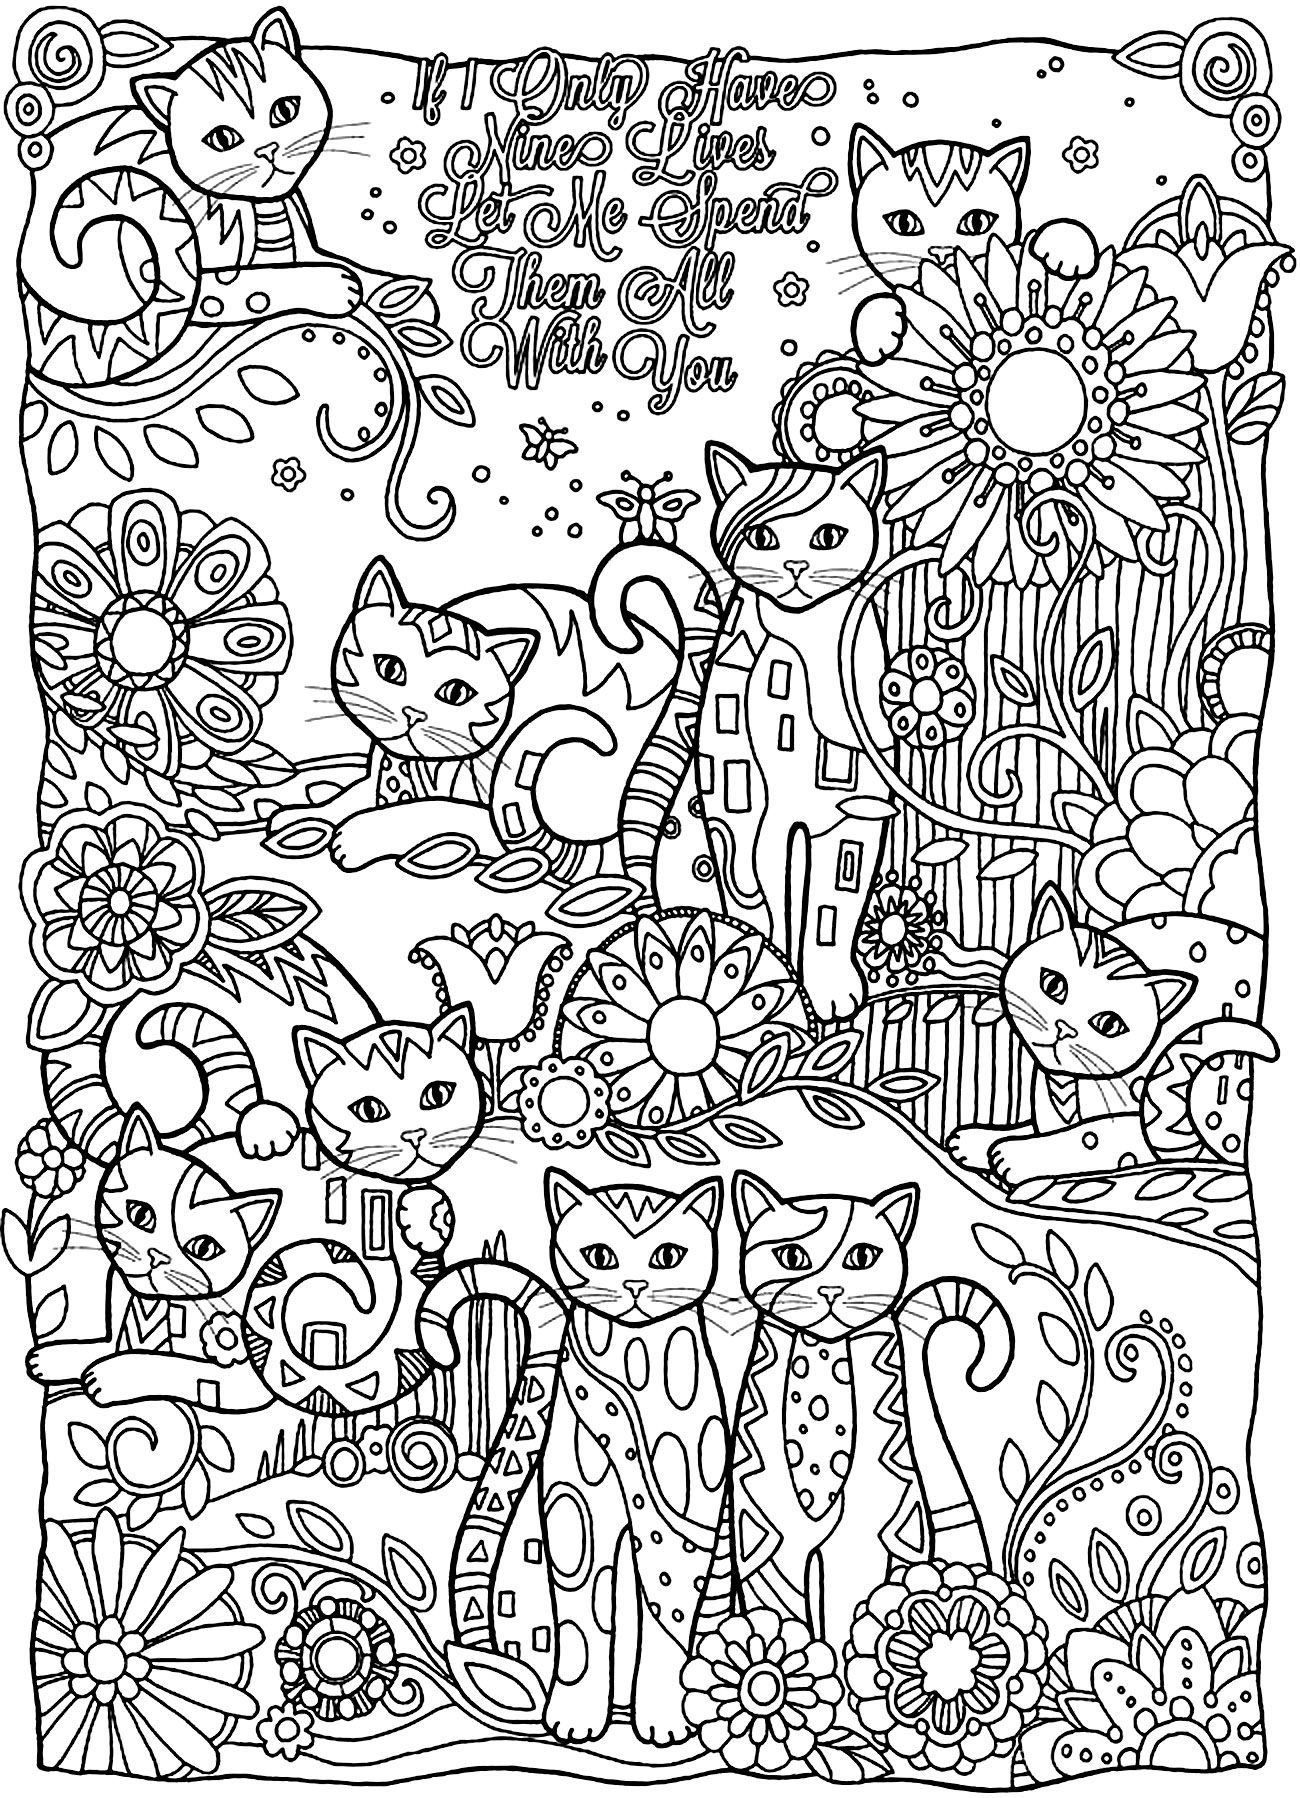 To Print This Free Coloring Page «coloring Adult Cats Cutes